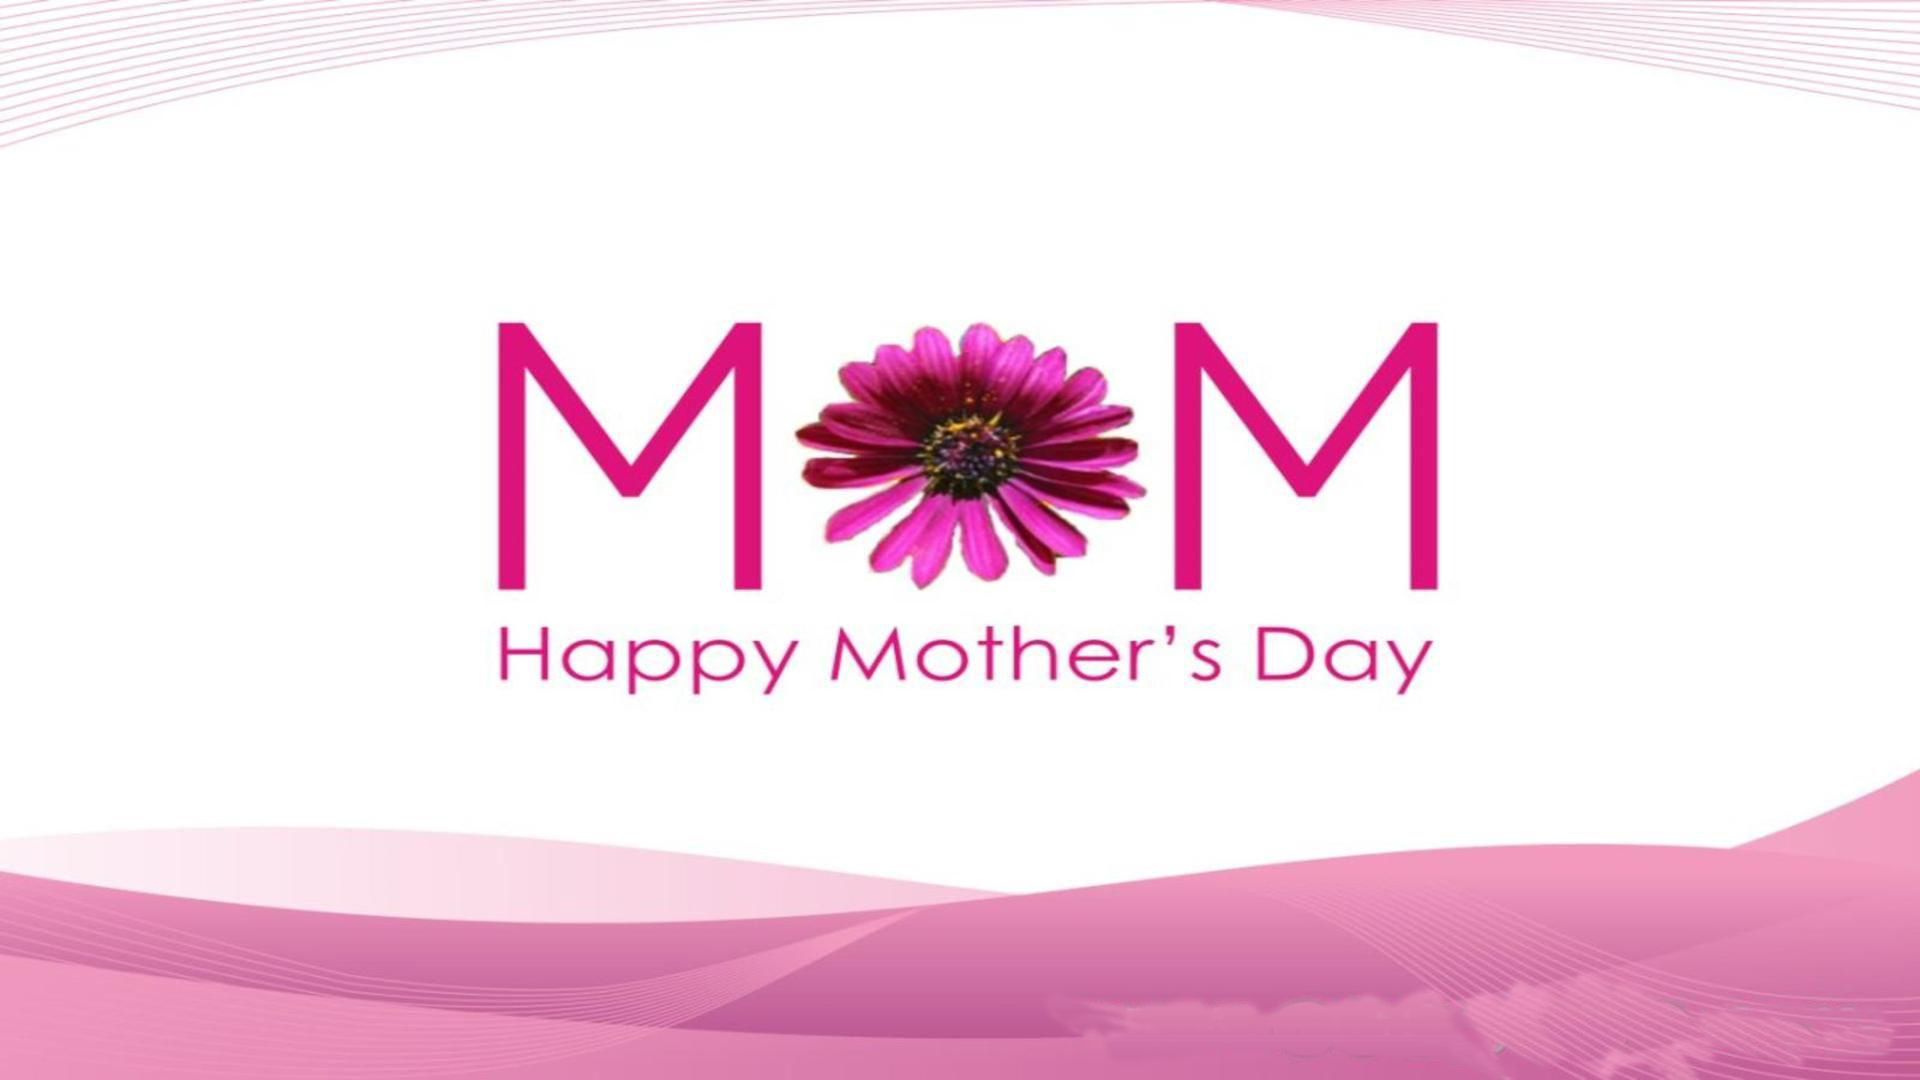 Mothers Day Wallpaper   Wallpaper High Definition High 1920x1080